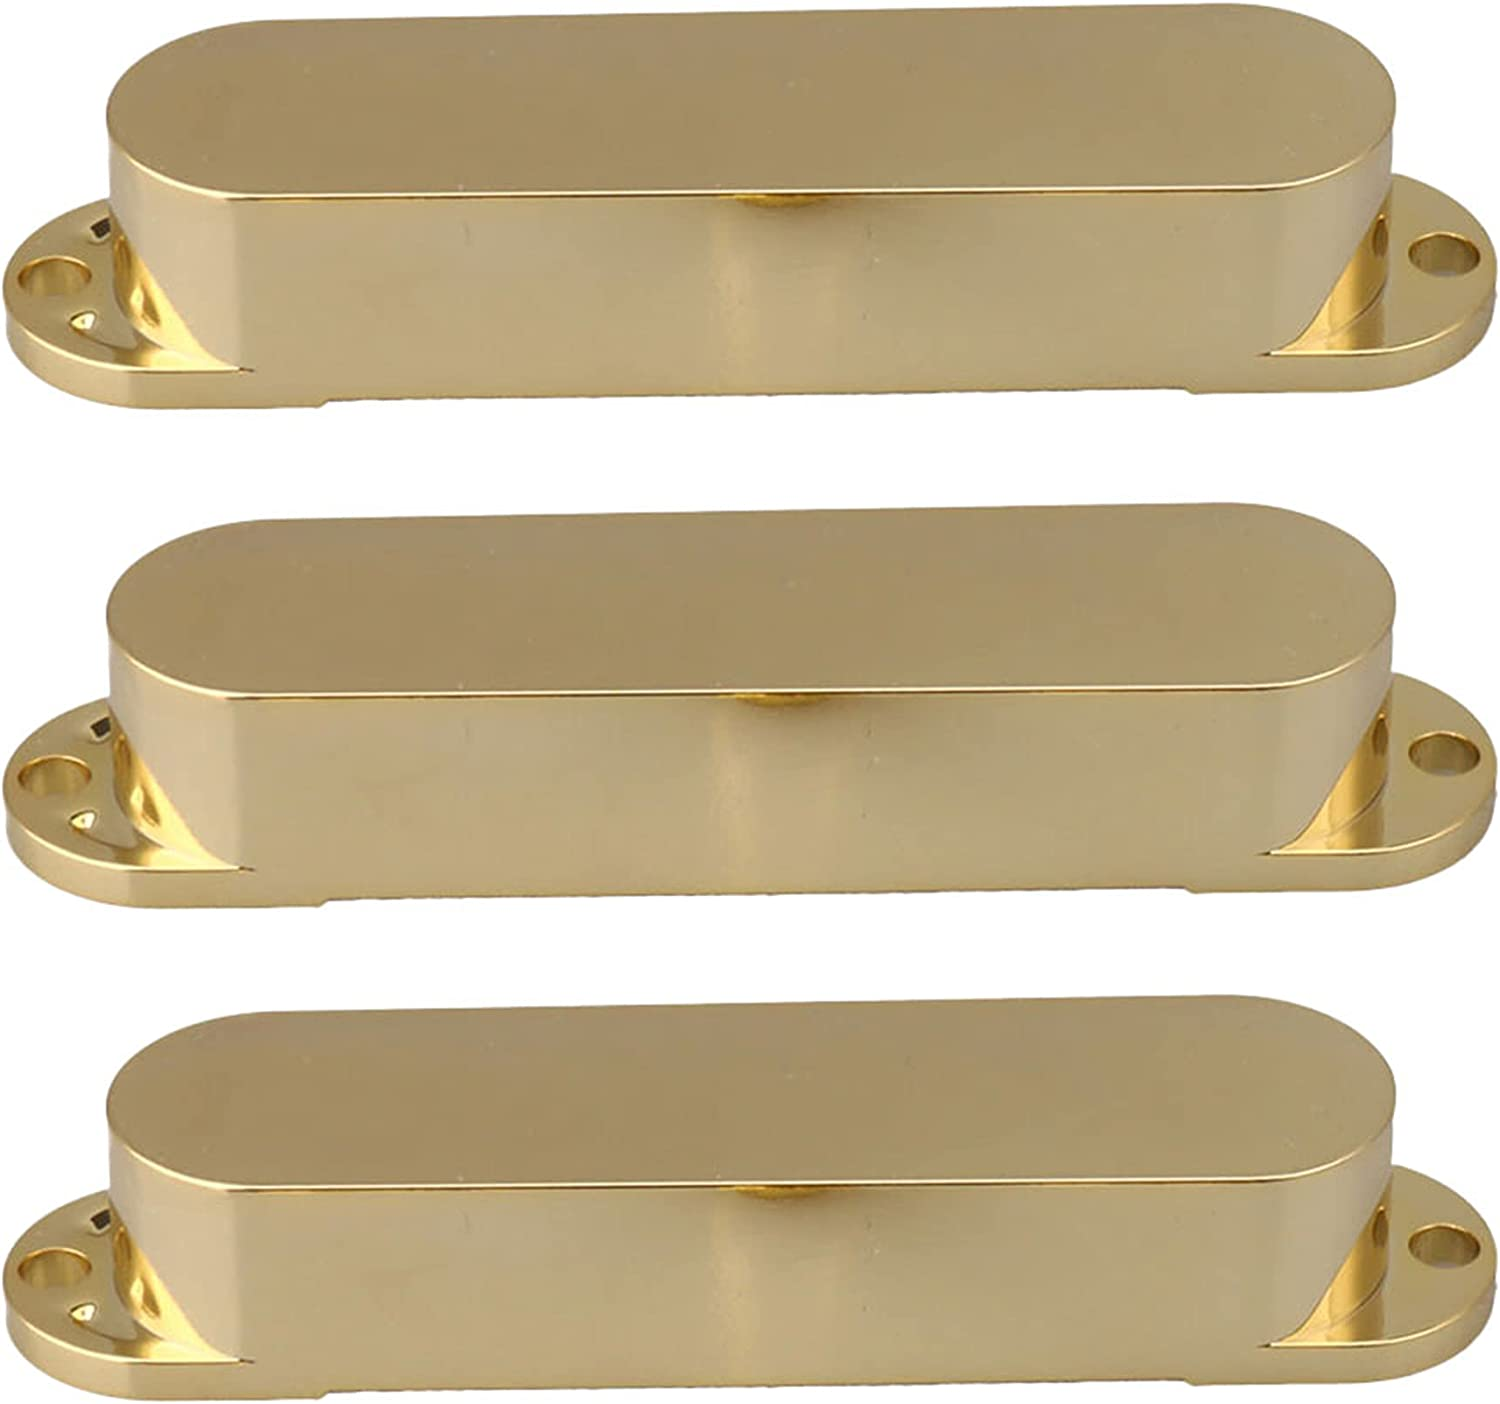 3PCS Gold Smooth Closed New arrival Shell Coil Guitar Courier shipping free shipping Pickup Electric Single